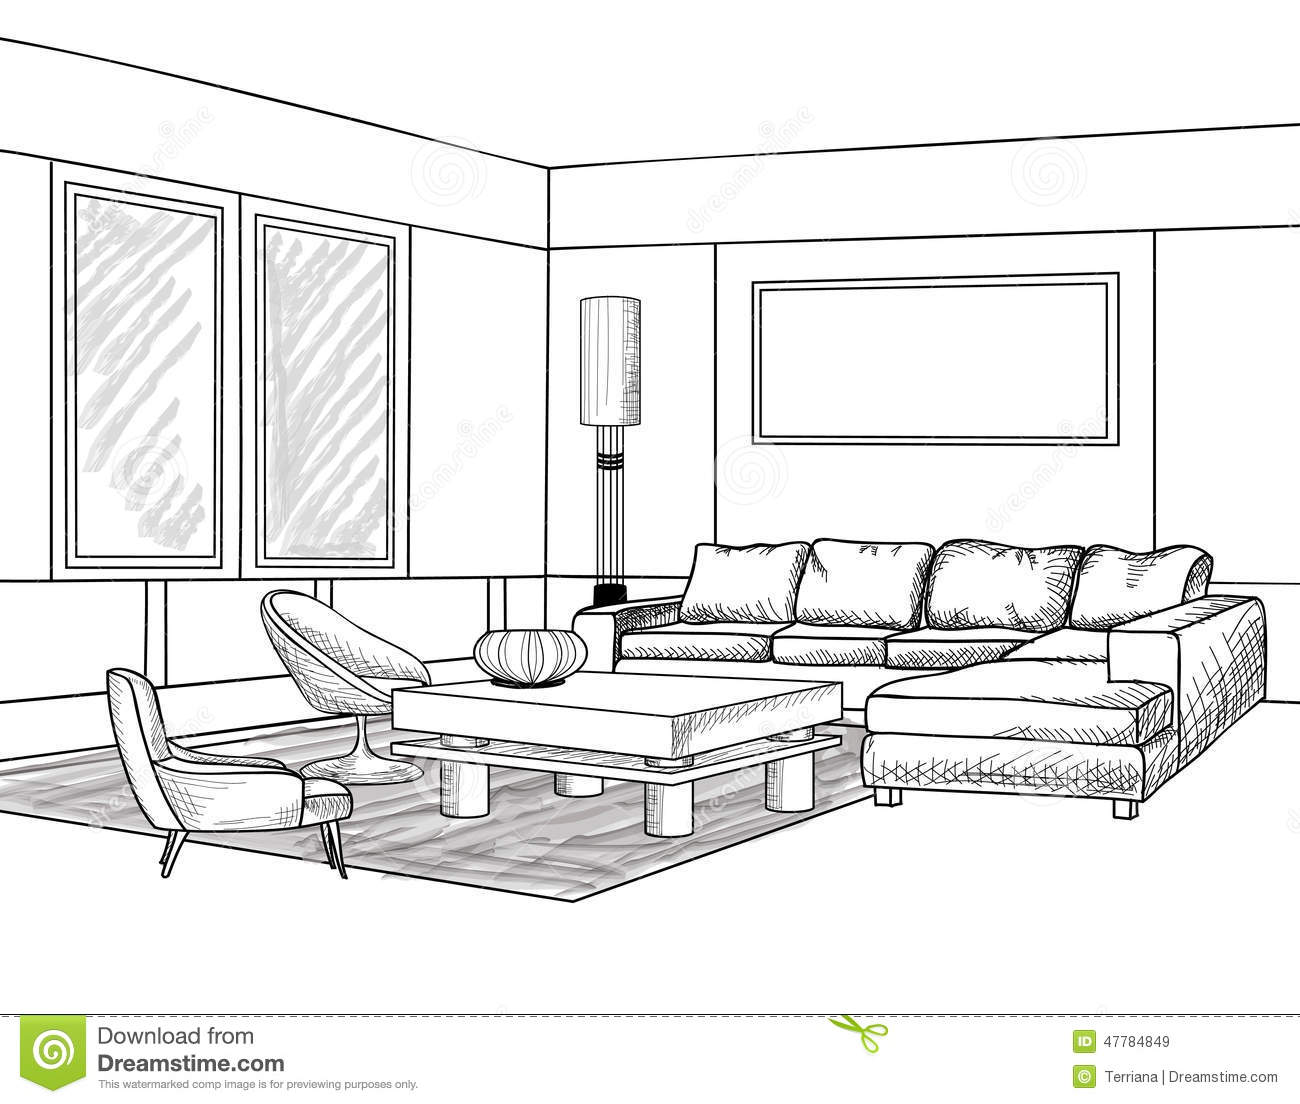 Oriental Bedroom Interior Outline Sketch Furniture Blueprint Stock